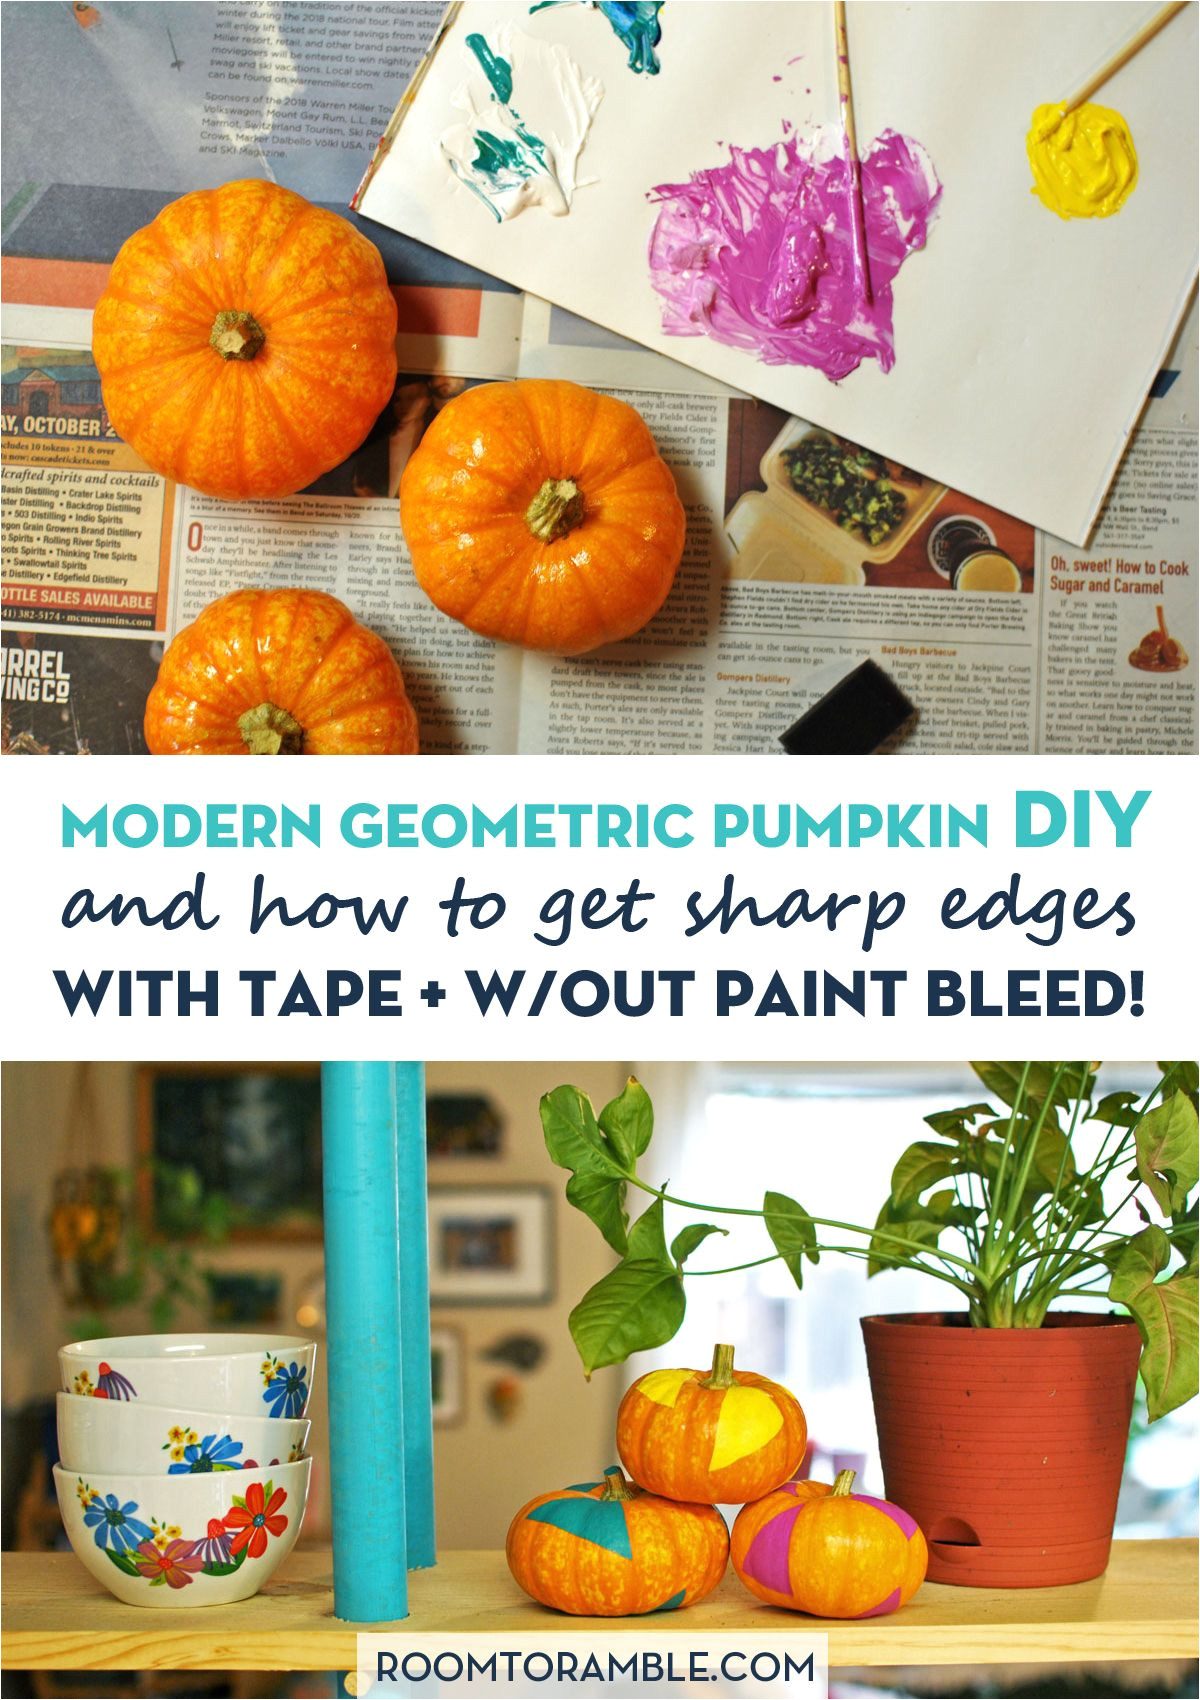 decorate your home for fall with a modern twist try this geometric pumpkin diy along with a helpful trick for painting shapes with a sharp edge